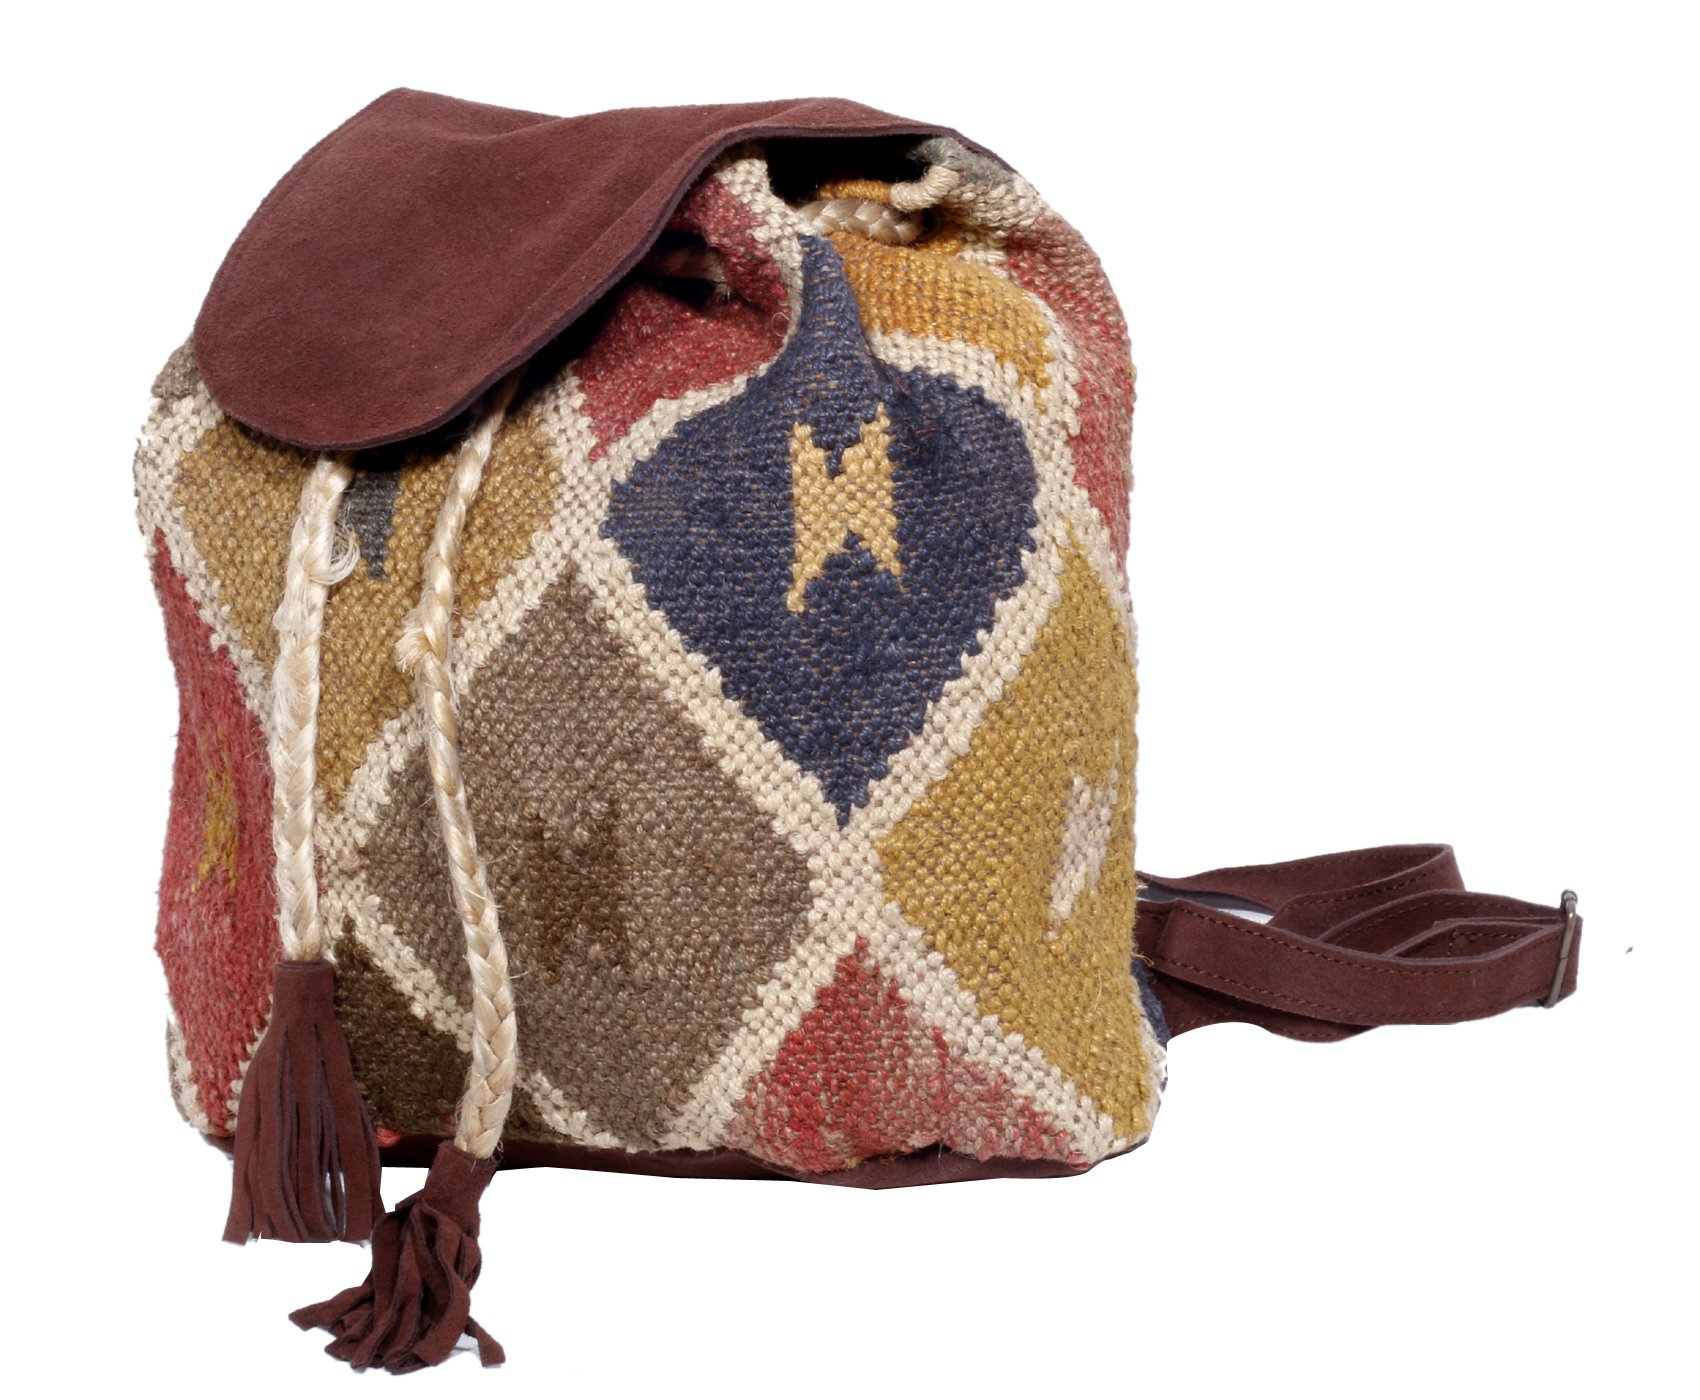 Indistar Women's Vintage Handmade Ethnic Kilim and Leather Back Pack Bag by Indistar (Image #4)